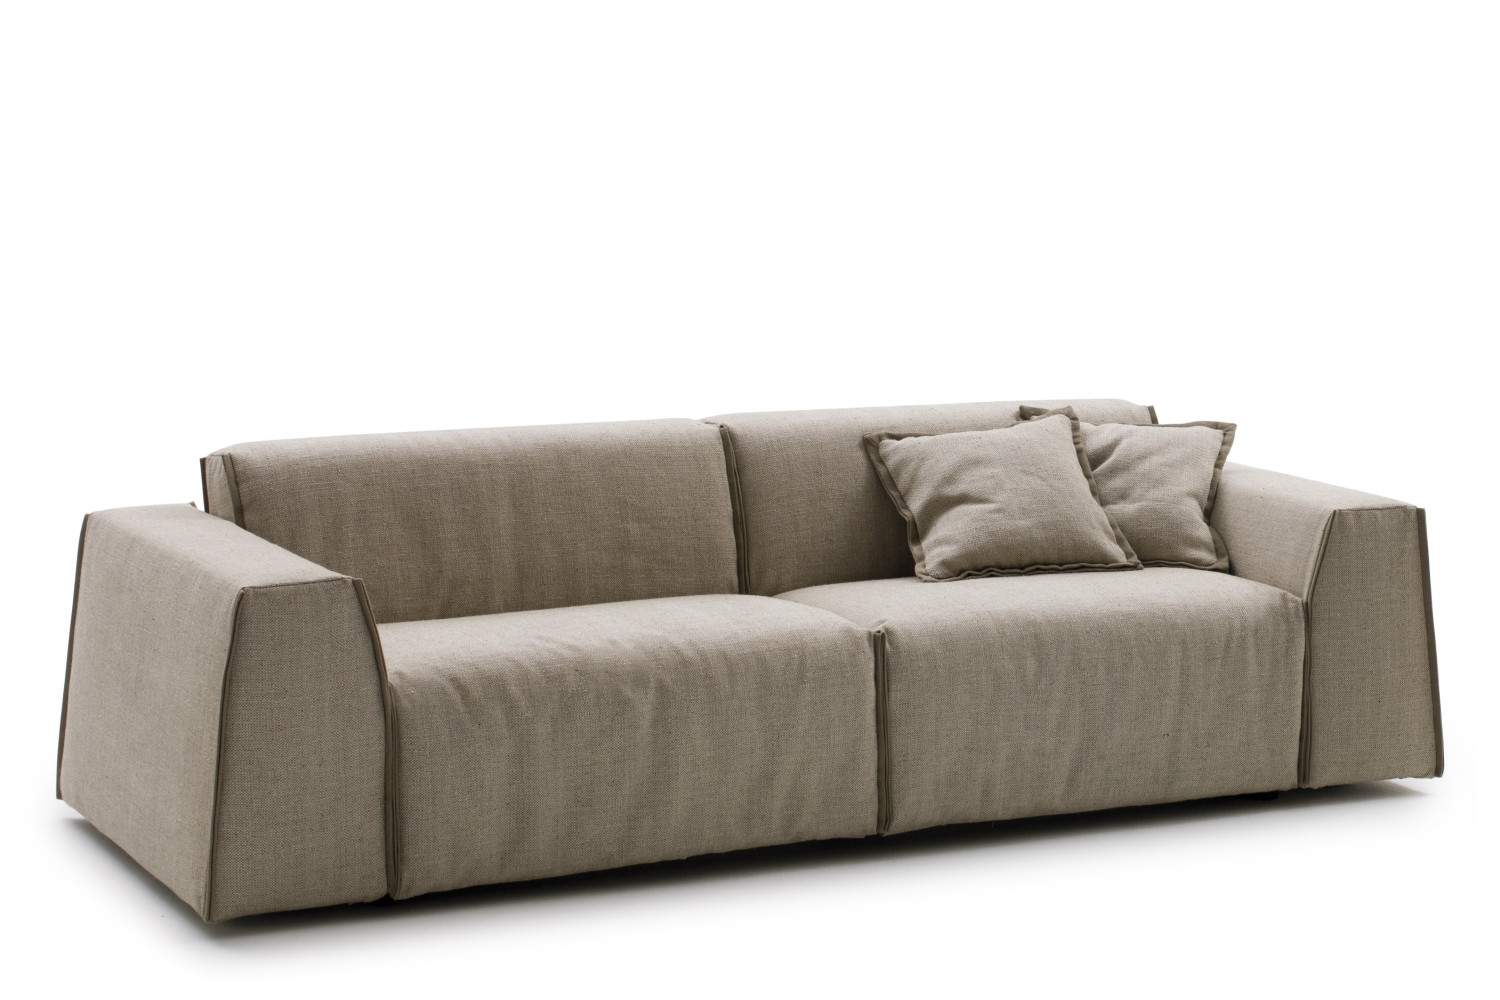 Parker sofa bed with low backrest for Sofa divano